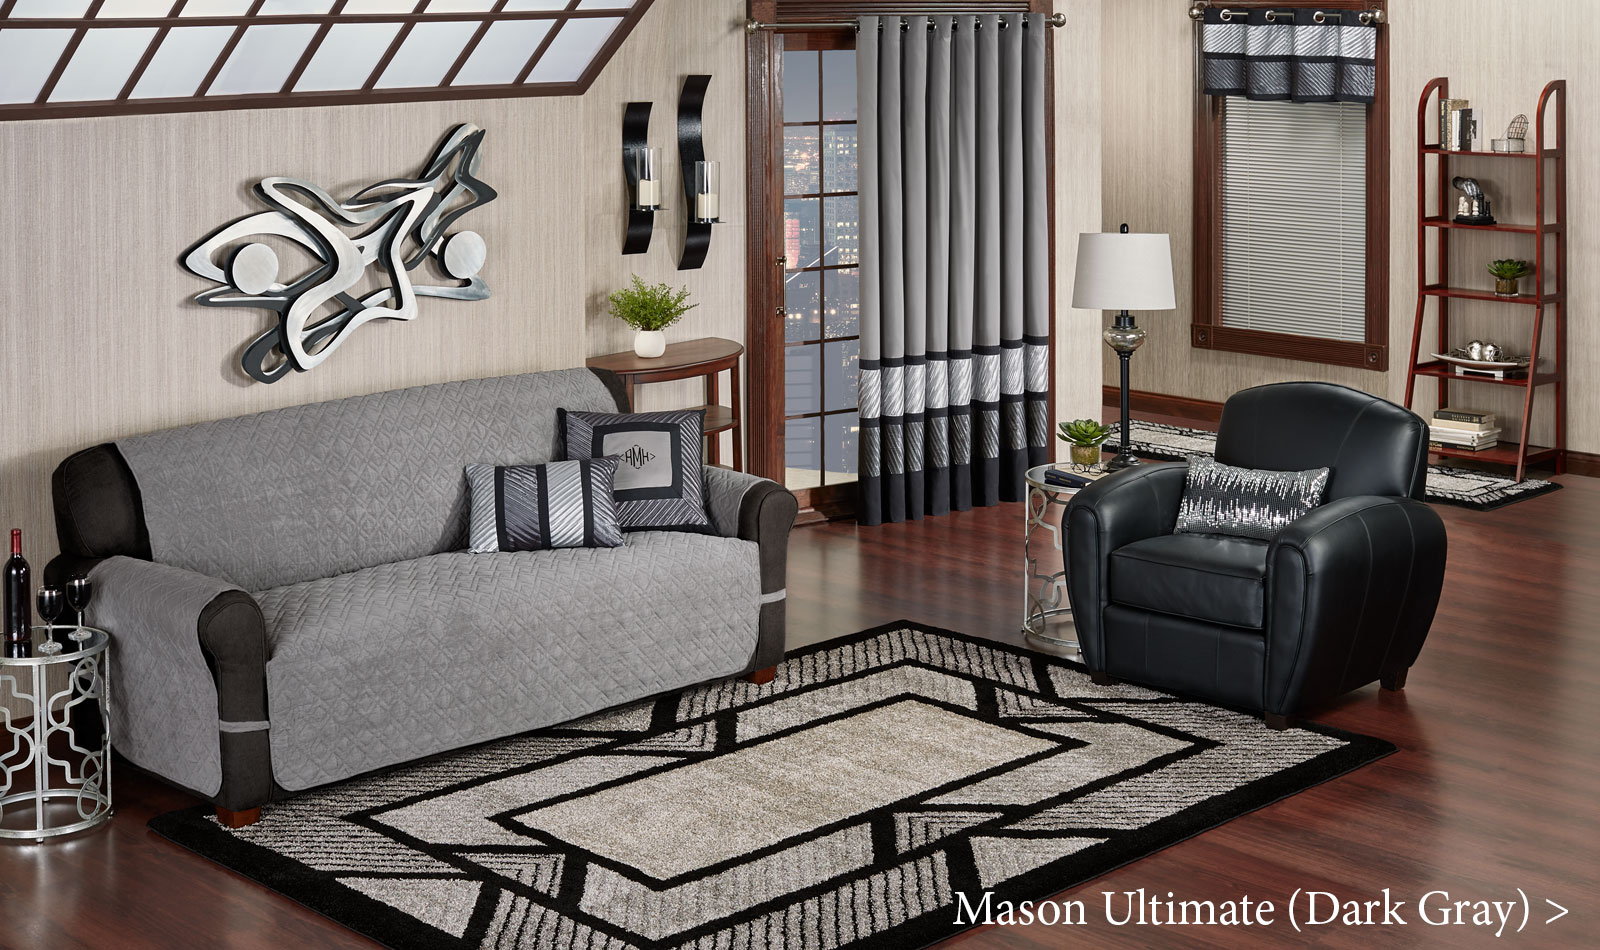 Get The Look - Living Room - Mason Ultimate Furniture Covers Dark Gray